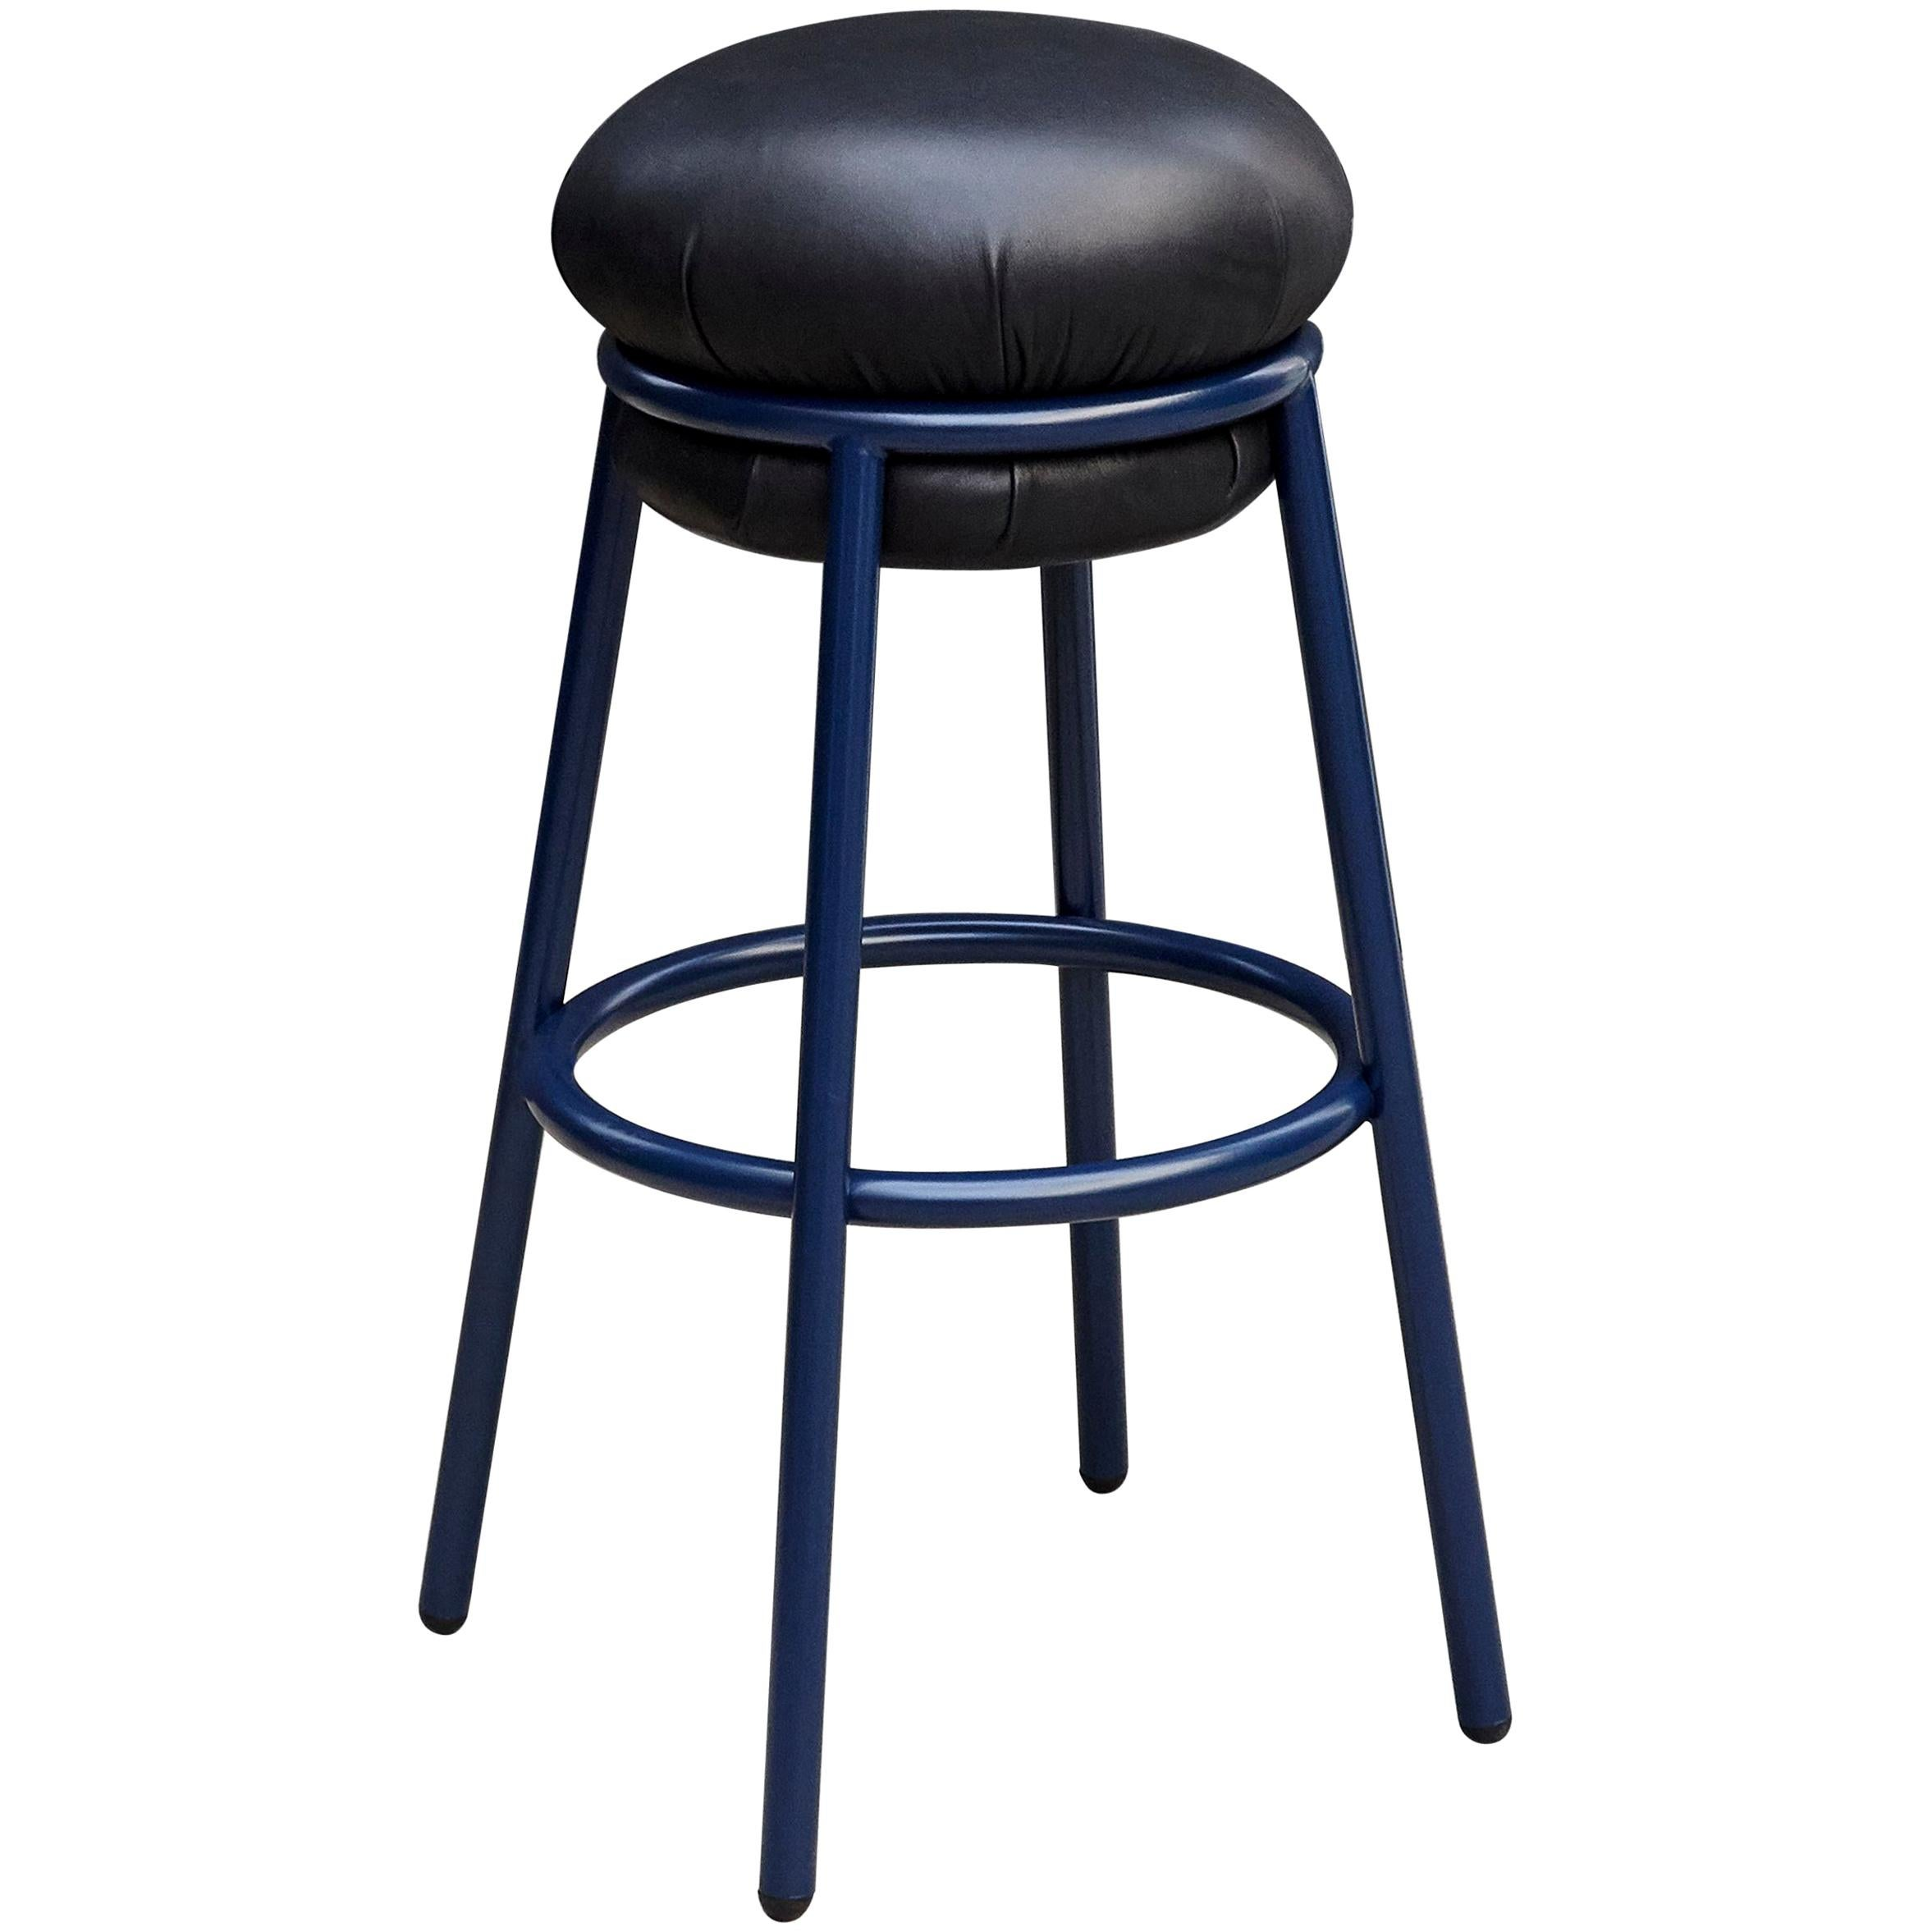 Stephen Burks Grasso Contemporary Black Leather, Blue Lacquered Metal Stool